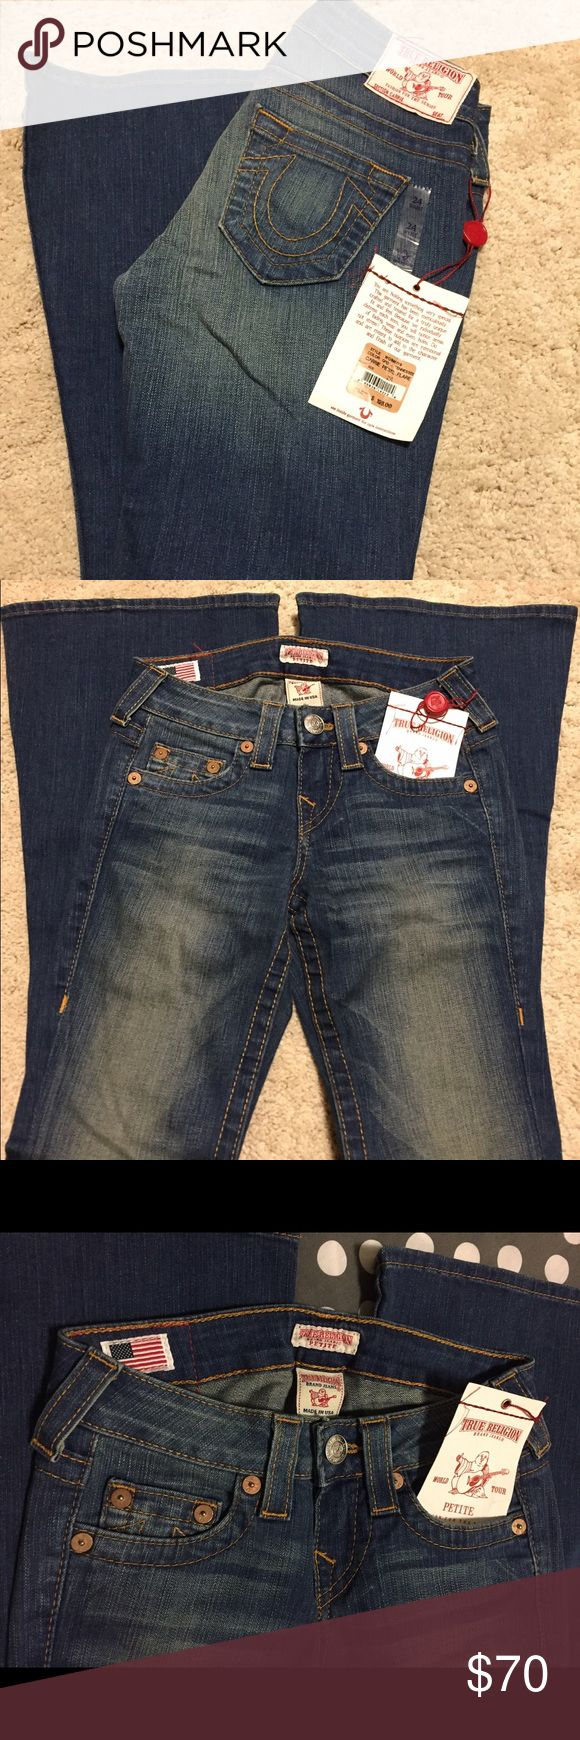 True Religion Carrie Petite Flare Jeans Brand new Carrie Petite Flare True Religion Jeans with original tag. Perfect everyday wear jeans. True Religion Jeans Flare & Wide Leg